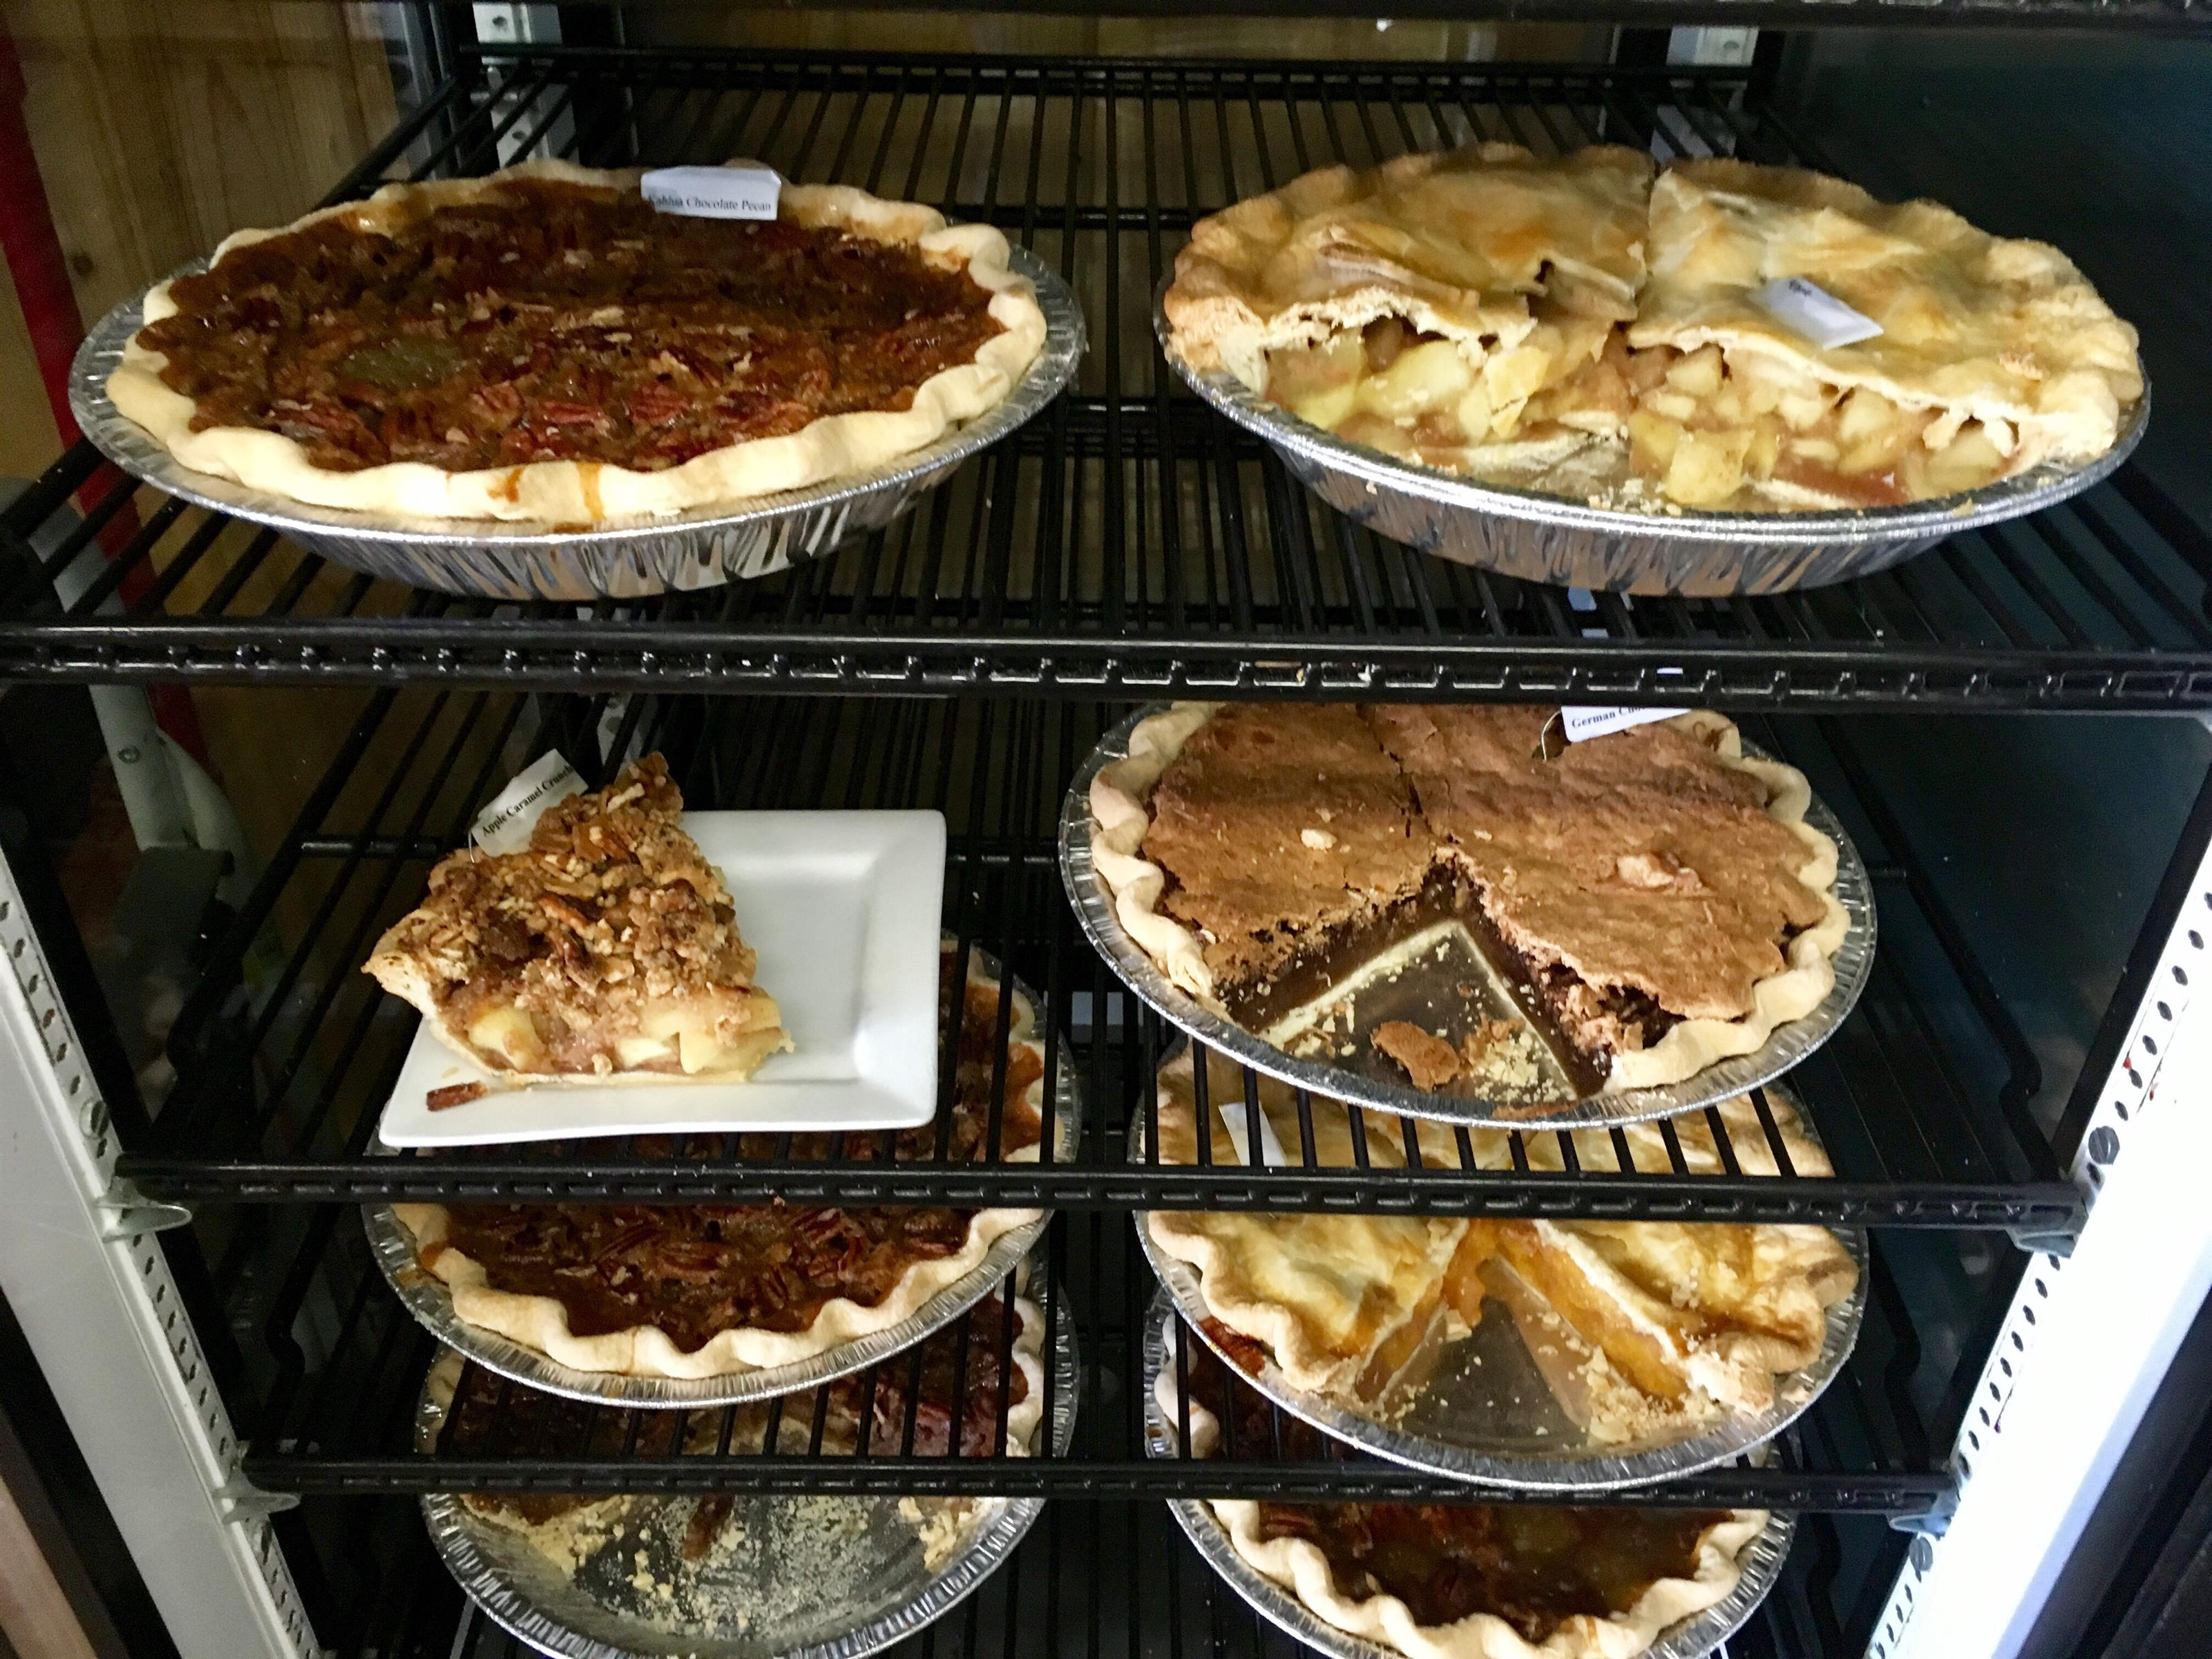 Dessert pies in the fridge